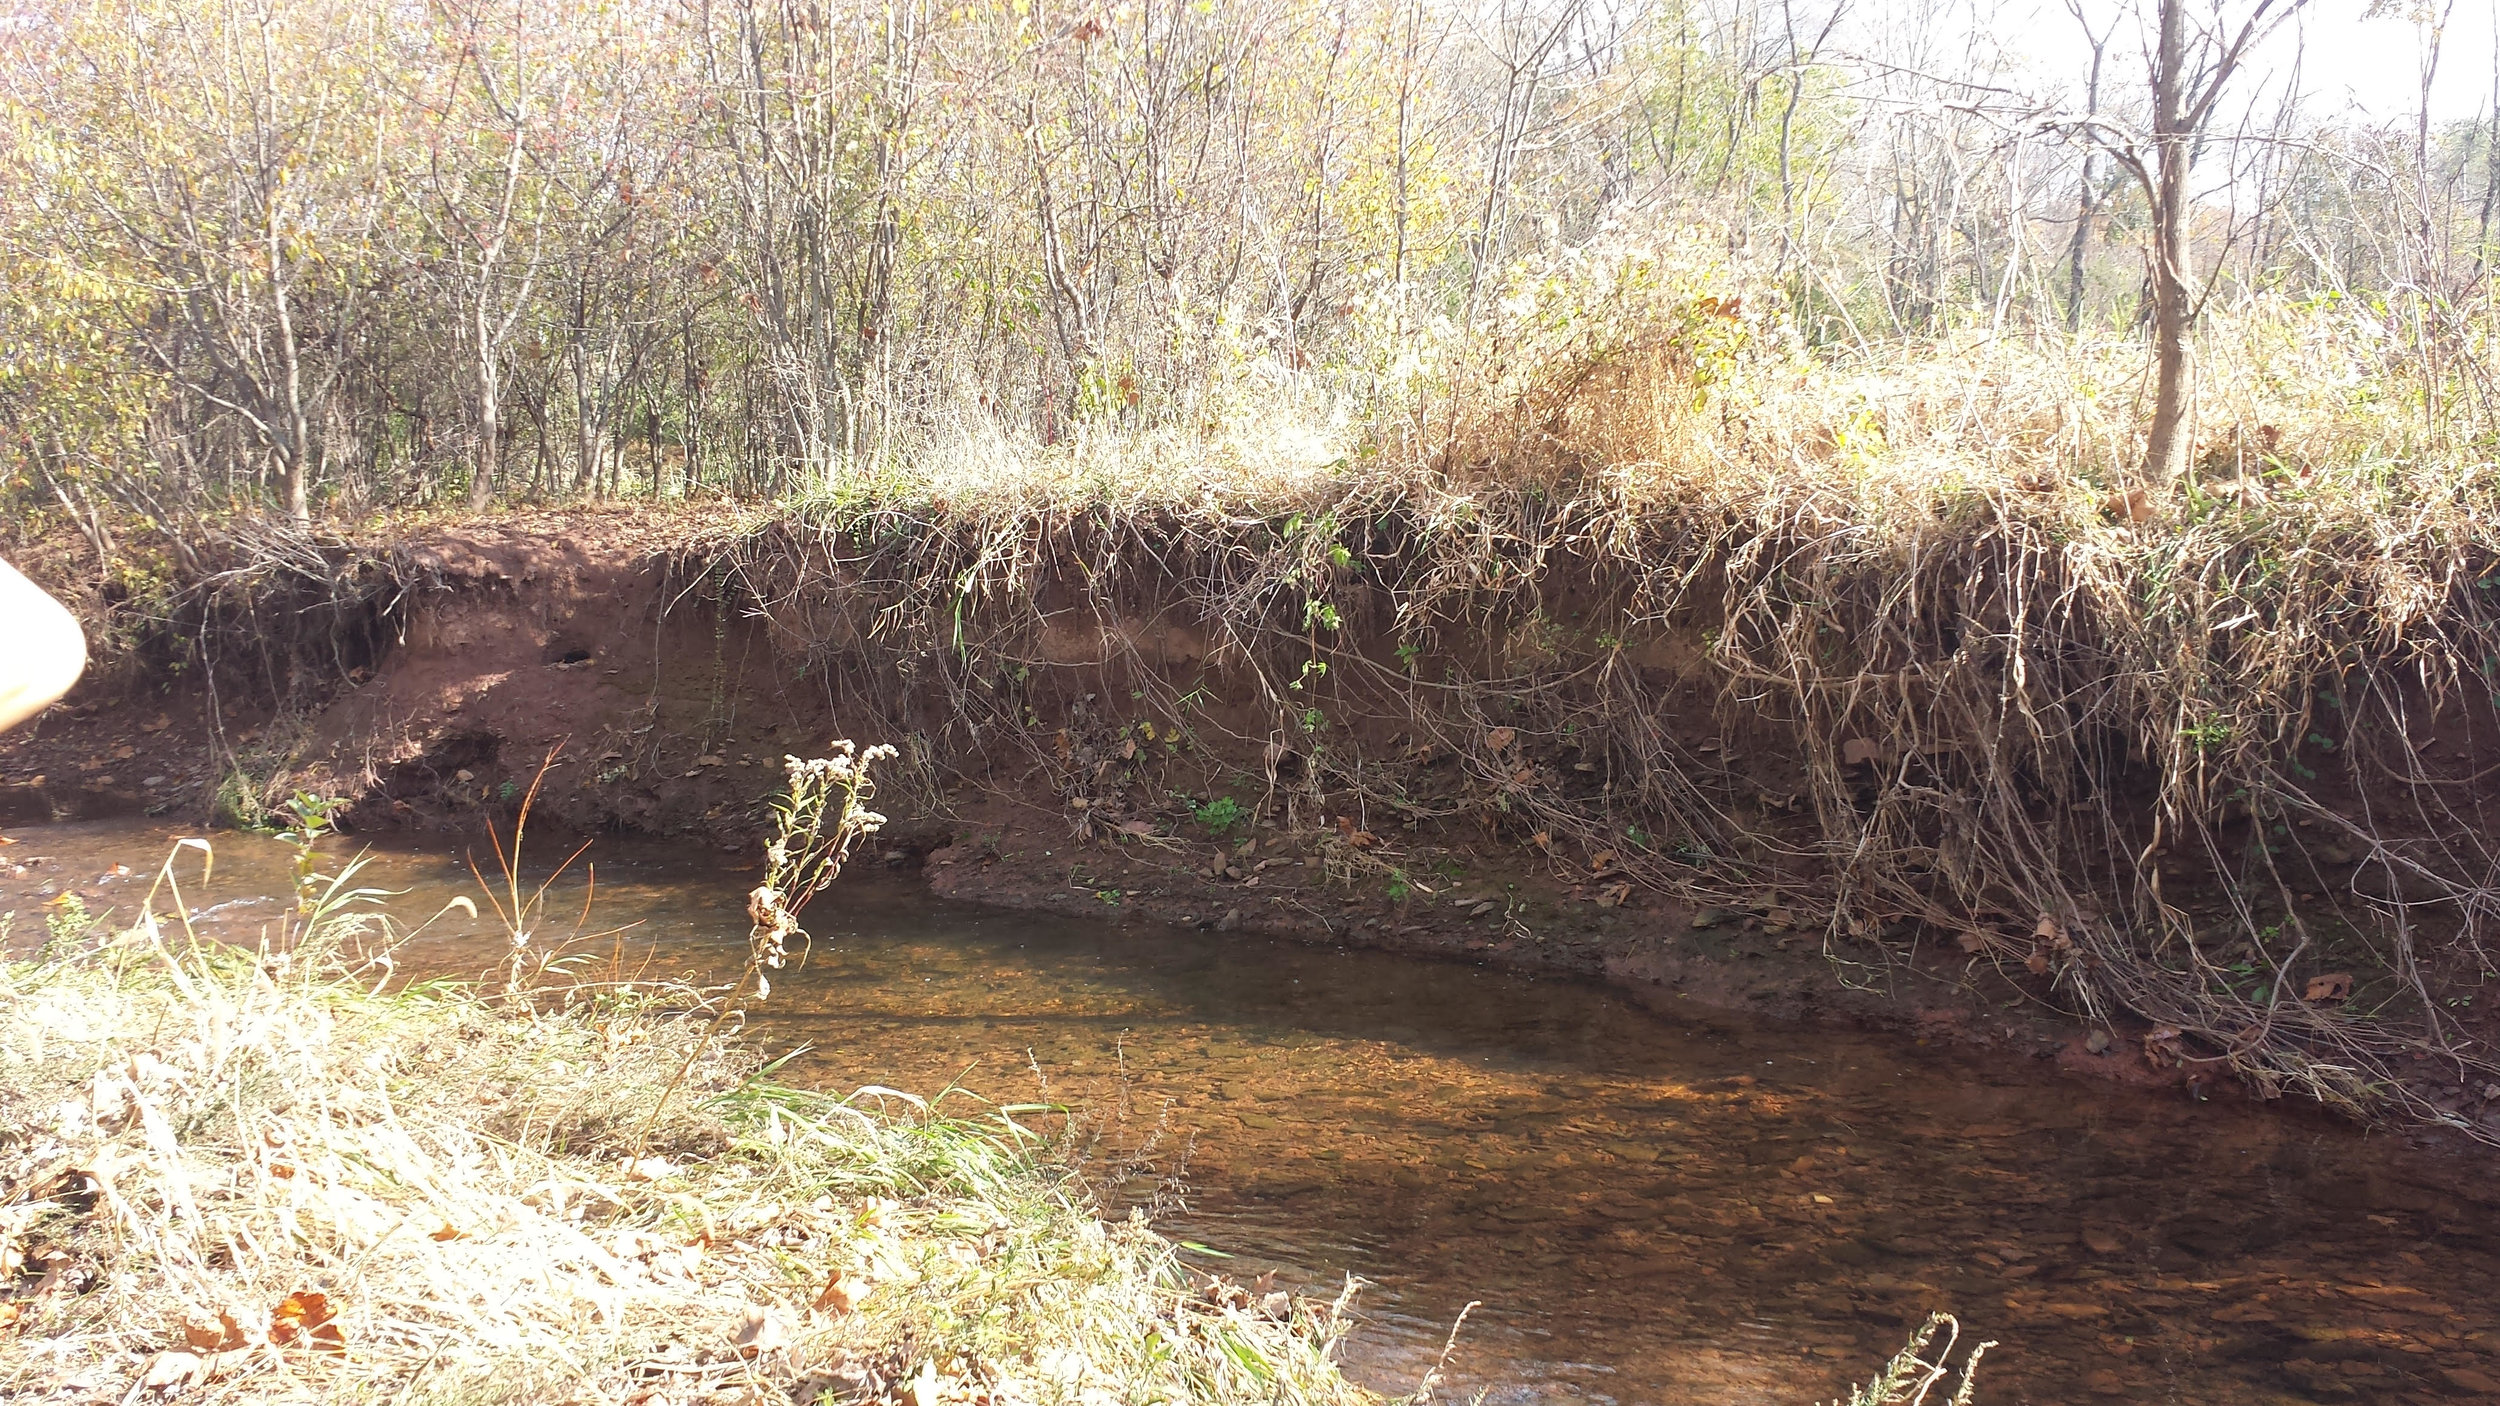 Eroded streambank along the West Branch of the Skippack Creek without a riparian buffer in place.